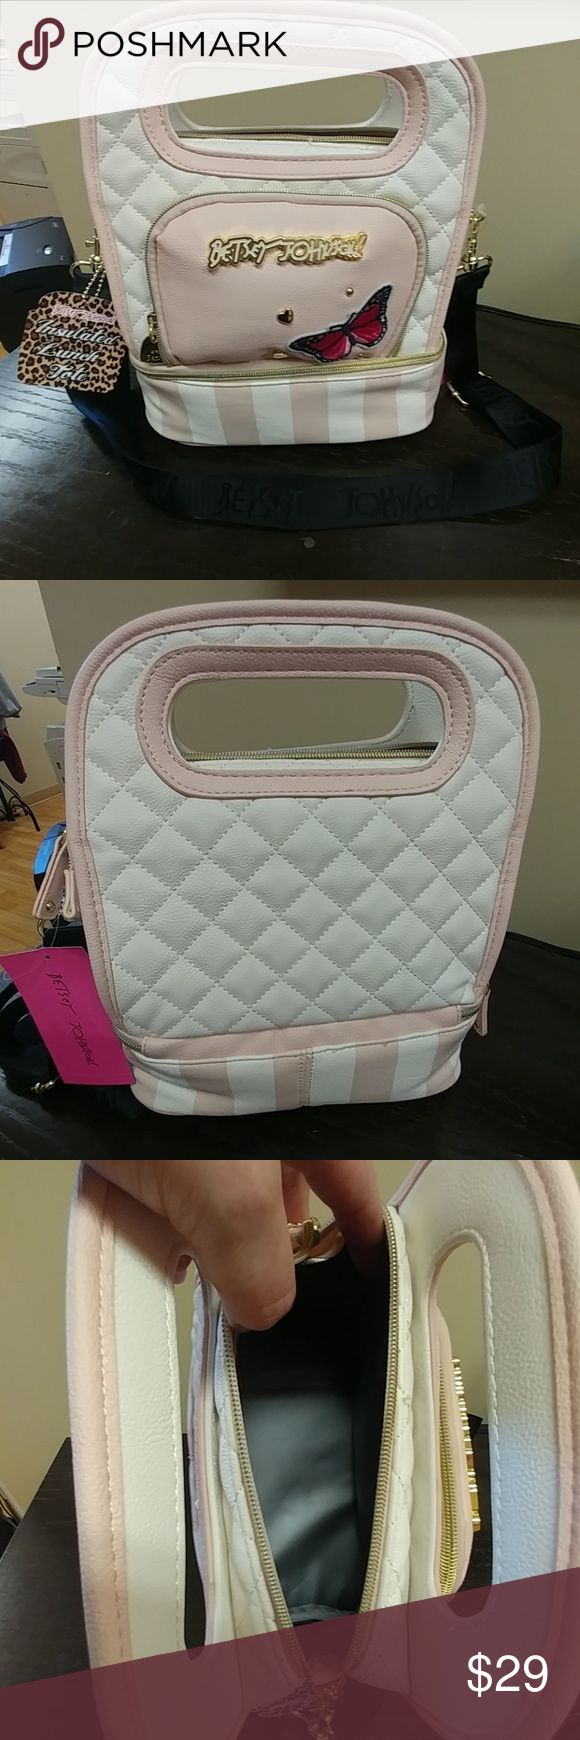 NWT Betsey Johnson Insulated Lunch Tote NWT adorable quilted Betsey Johnson Insulated Lunch tote, 2 separate zippered compartments with small pocket in front with butterfly, adjustable shoulder strap Betsey Johnson Bags Totes